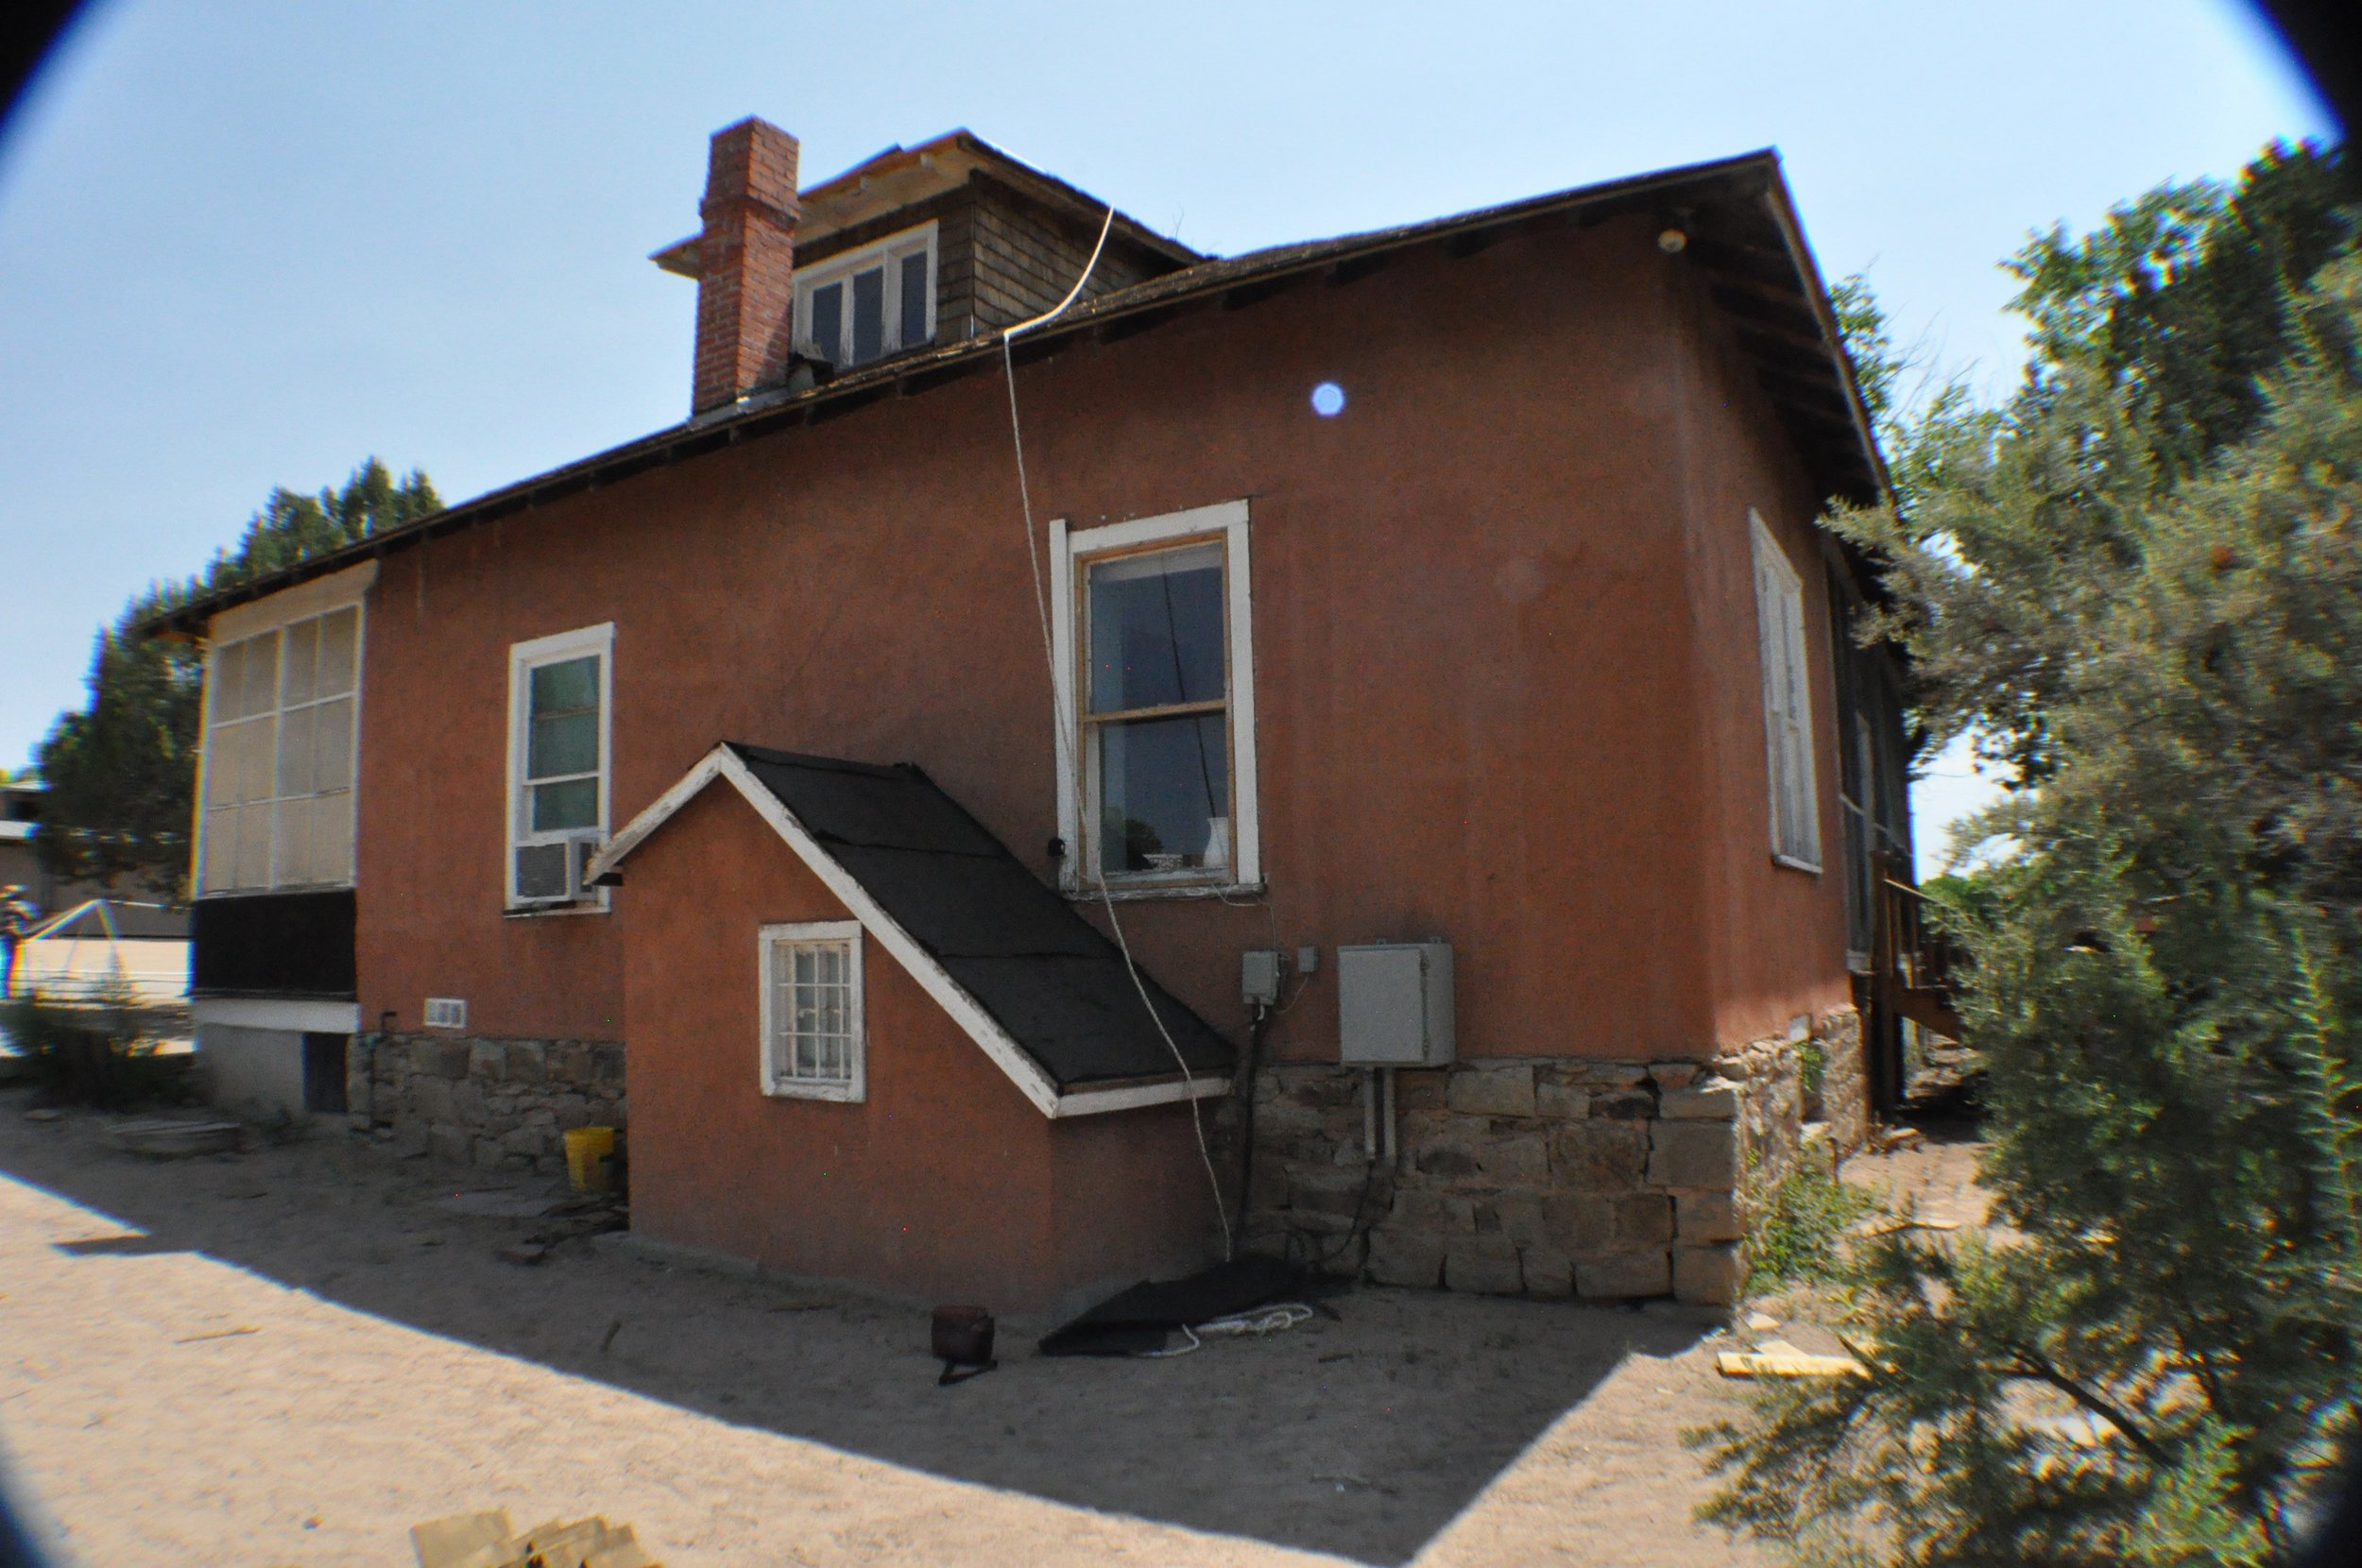 Pino Ranch House at Ranch de las golondrinas  listed on HSFF's Register